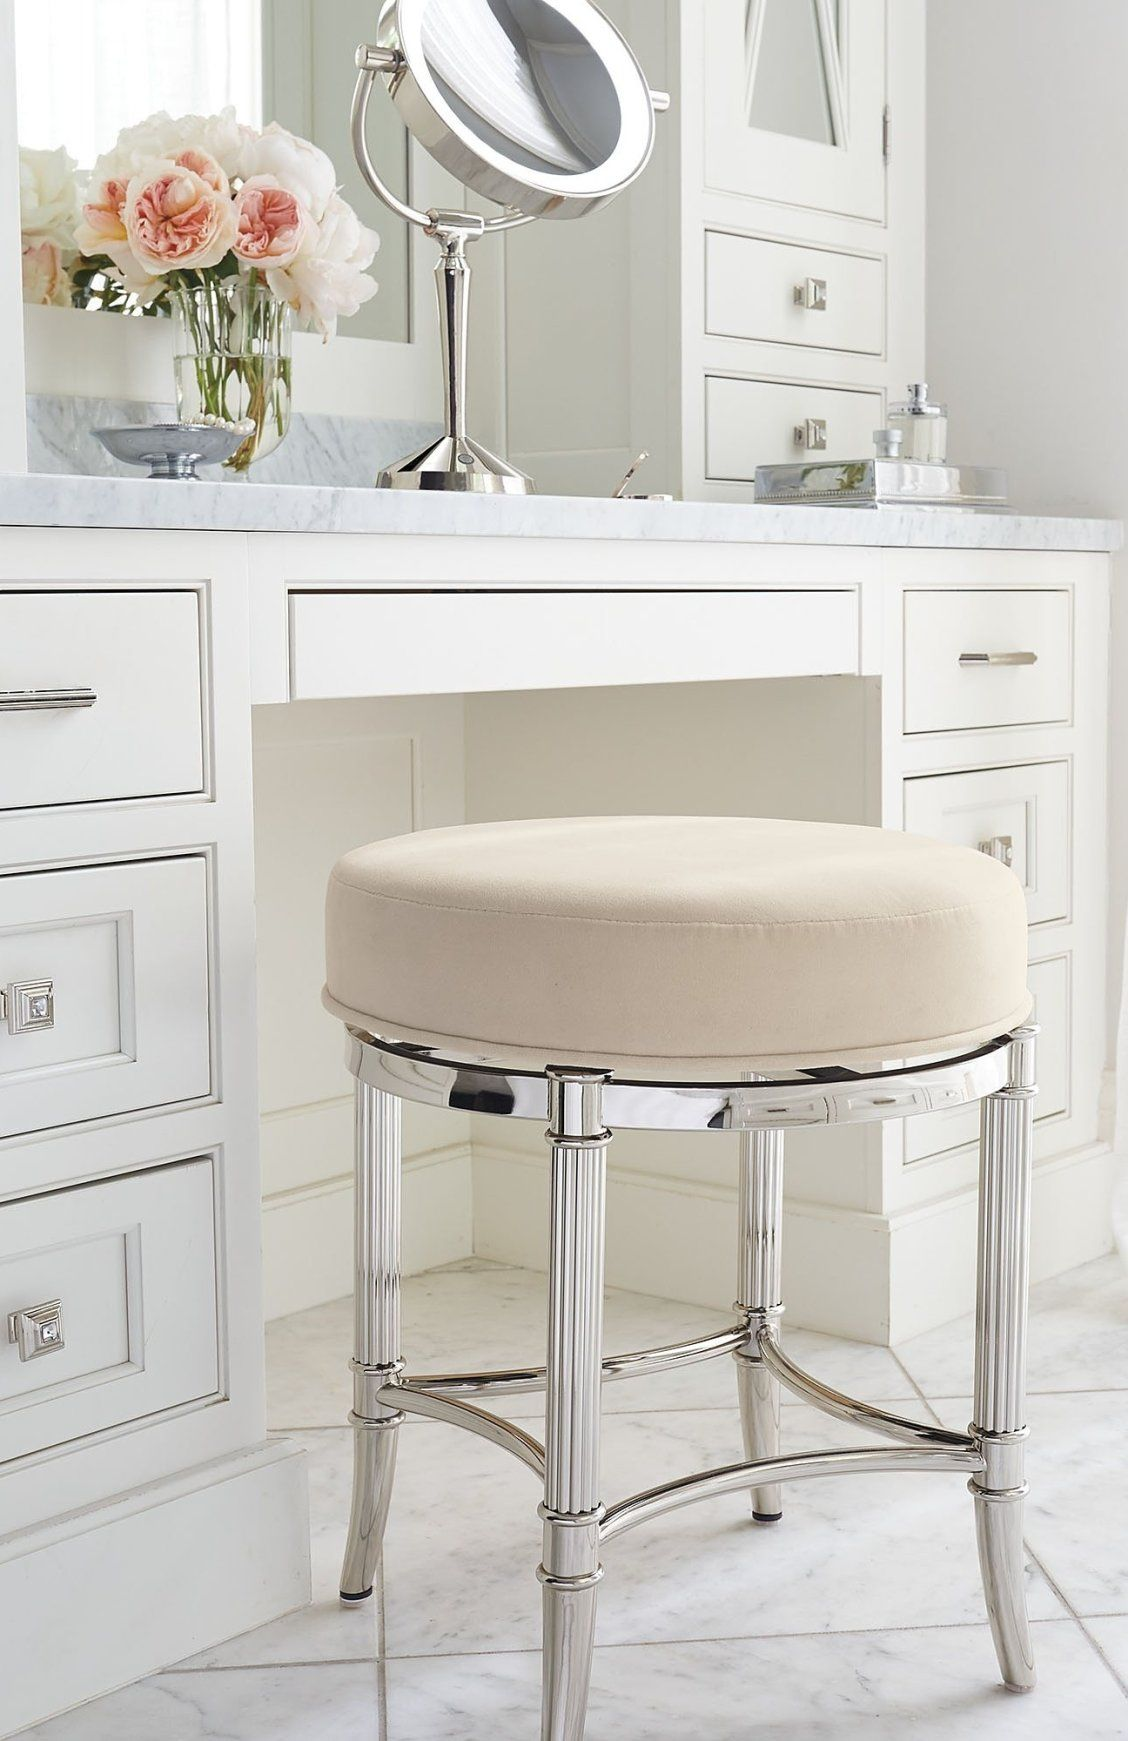 Bailey Swivel Vanity Stool In 2020 Bathroom Vanity Stool Vanity